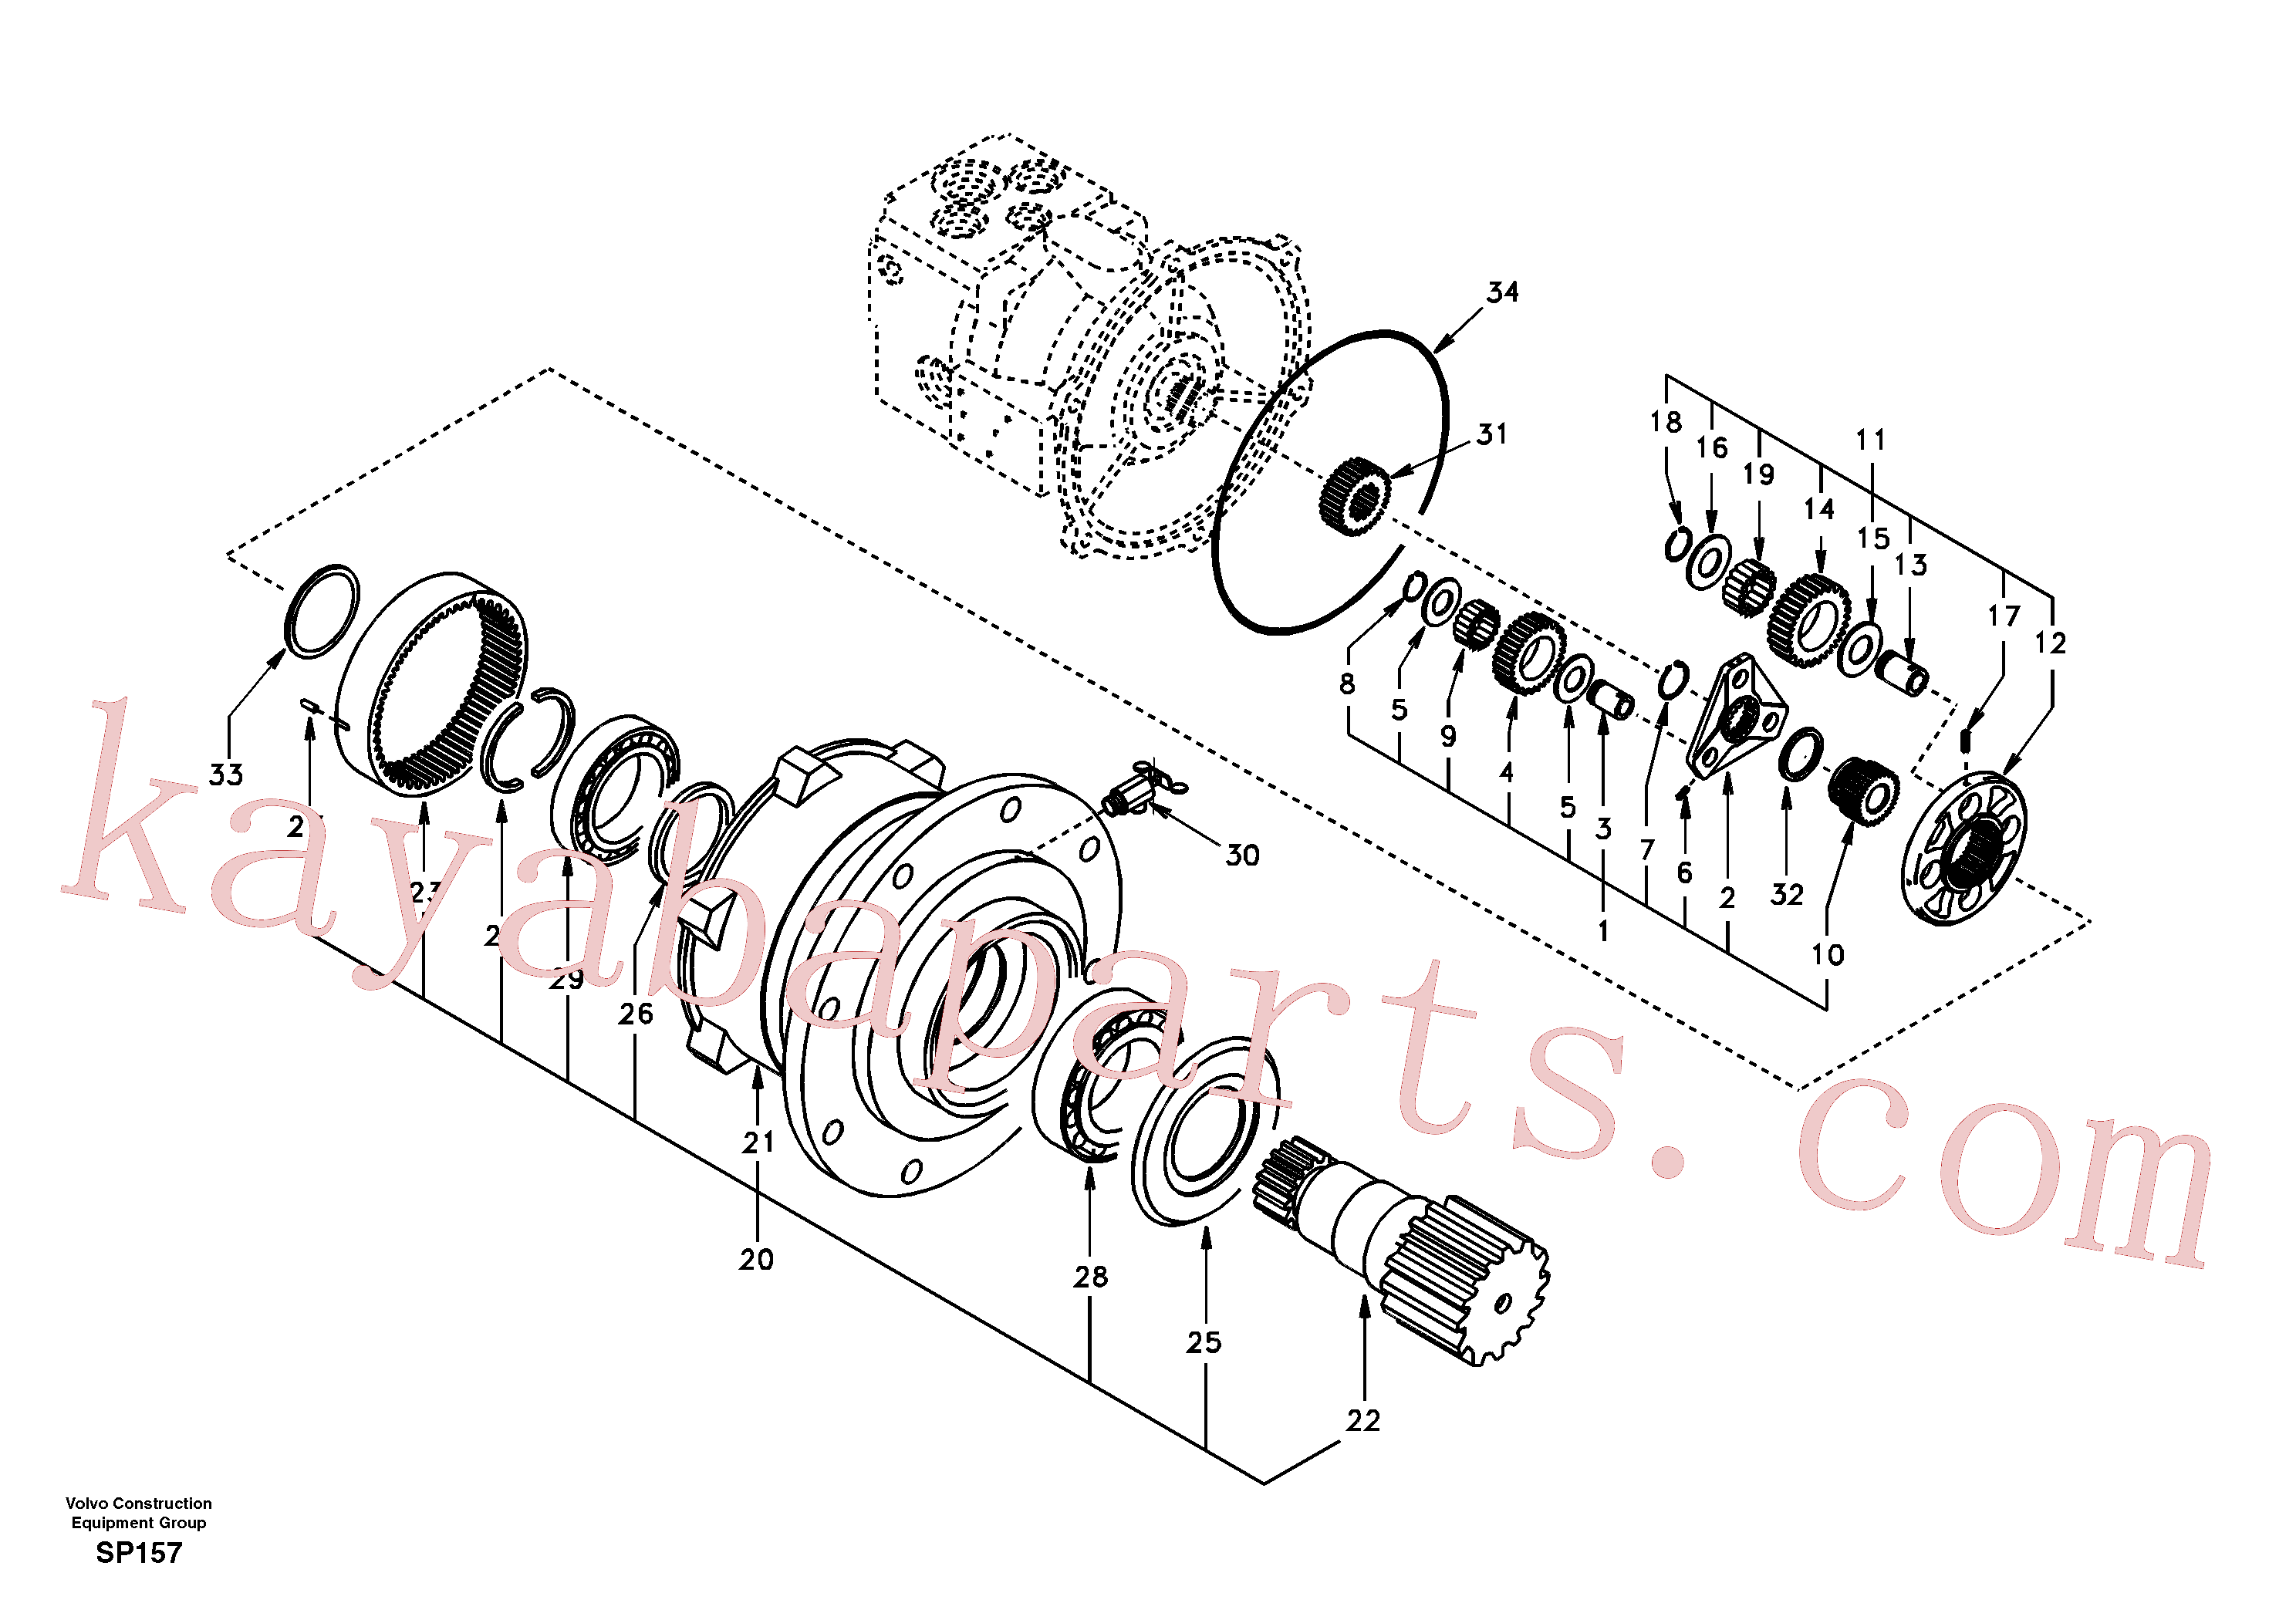 SA14504979 for Volvo Swing gearbox(SP157 assembly)